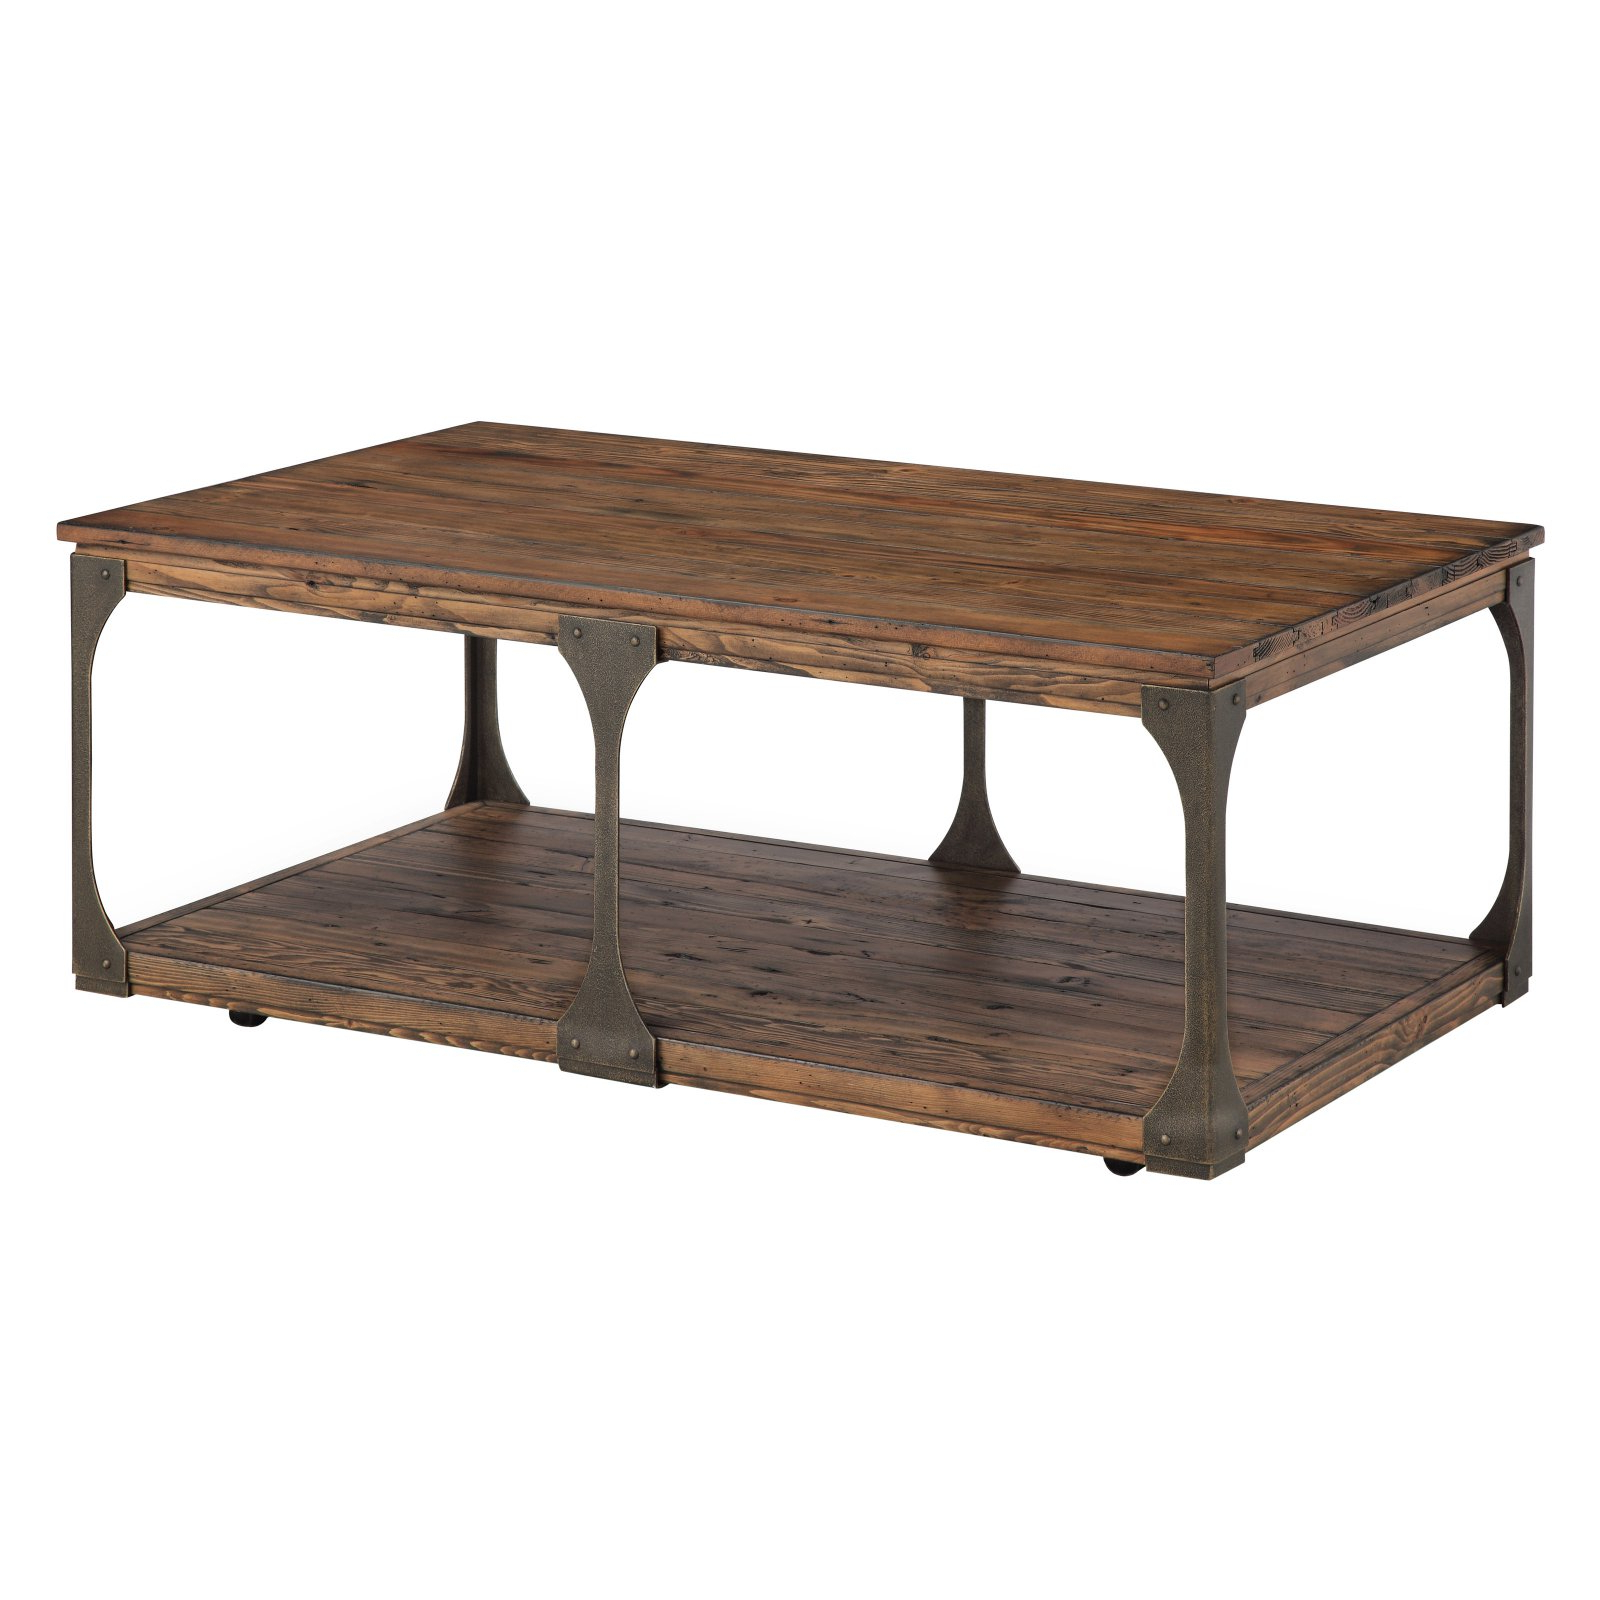 Preferred Montgomery Industrial Reclaimed Wood Coffee Tables With Casters With Magnussen Montgomery Reclaimed Wood Coffee Table With (View 16 of 20)